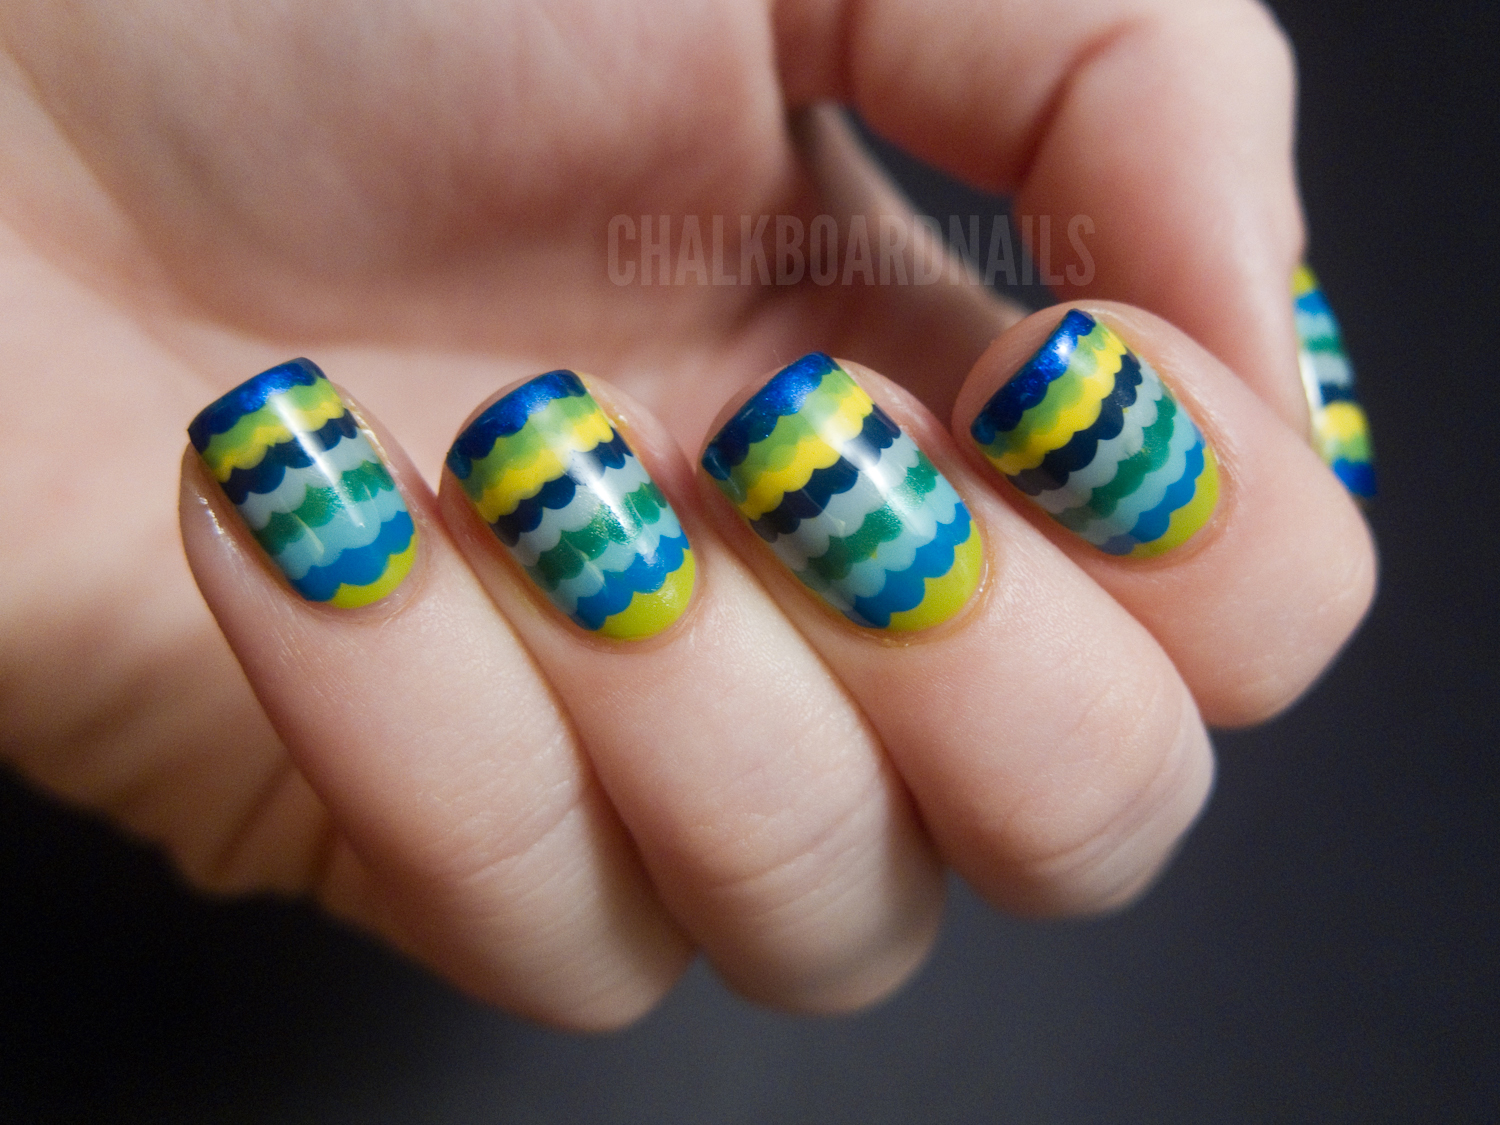 Ruffle Manicure Tutorial | Chalkboard Nails | Nail Art Blog